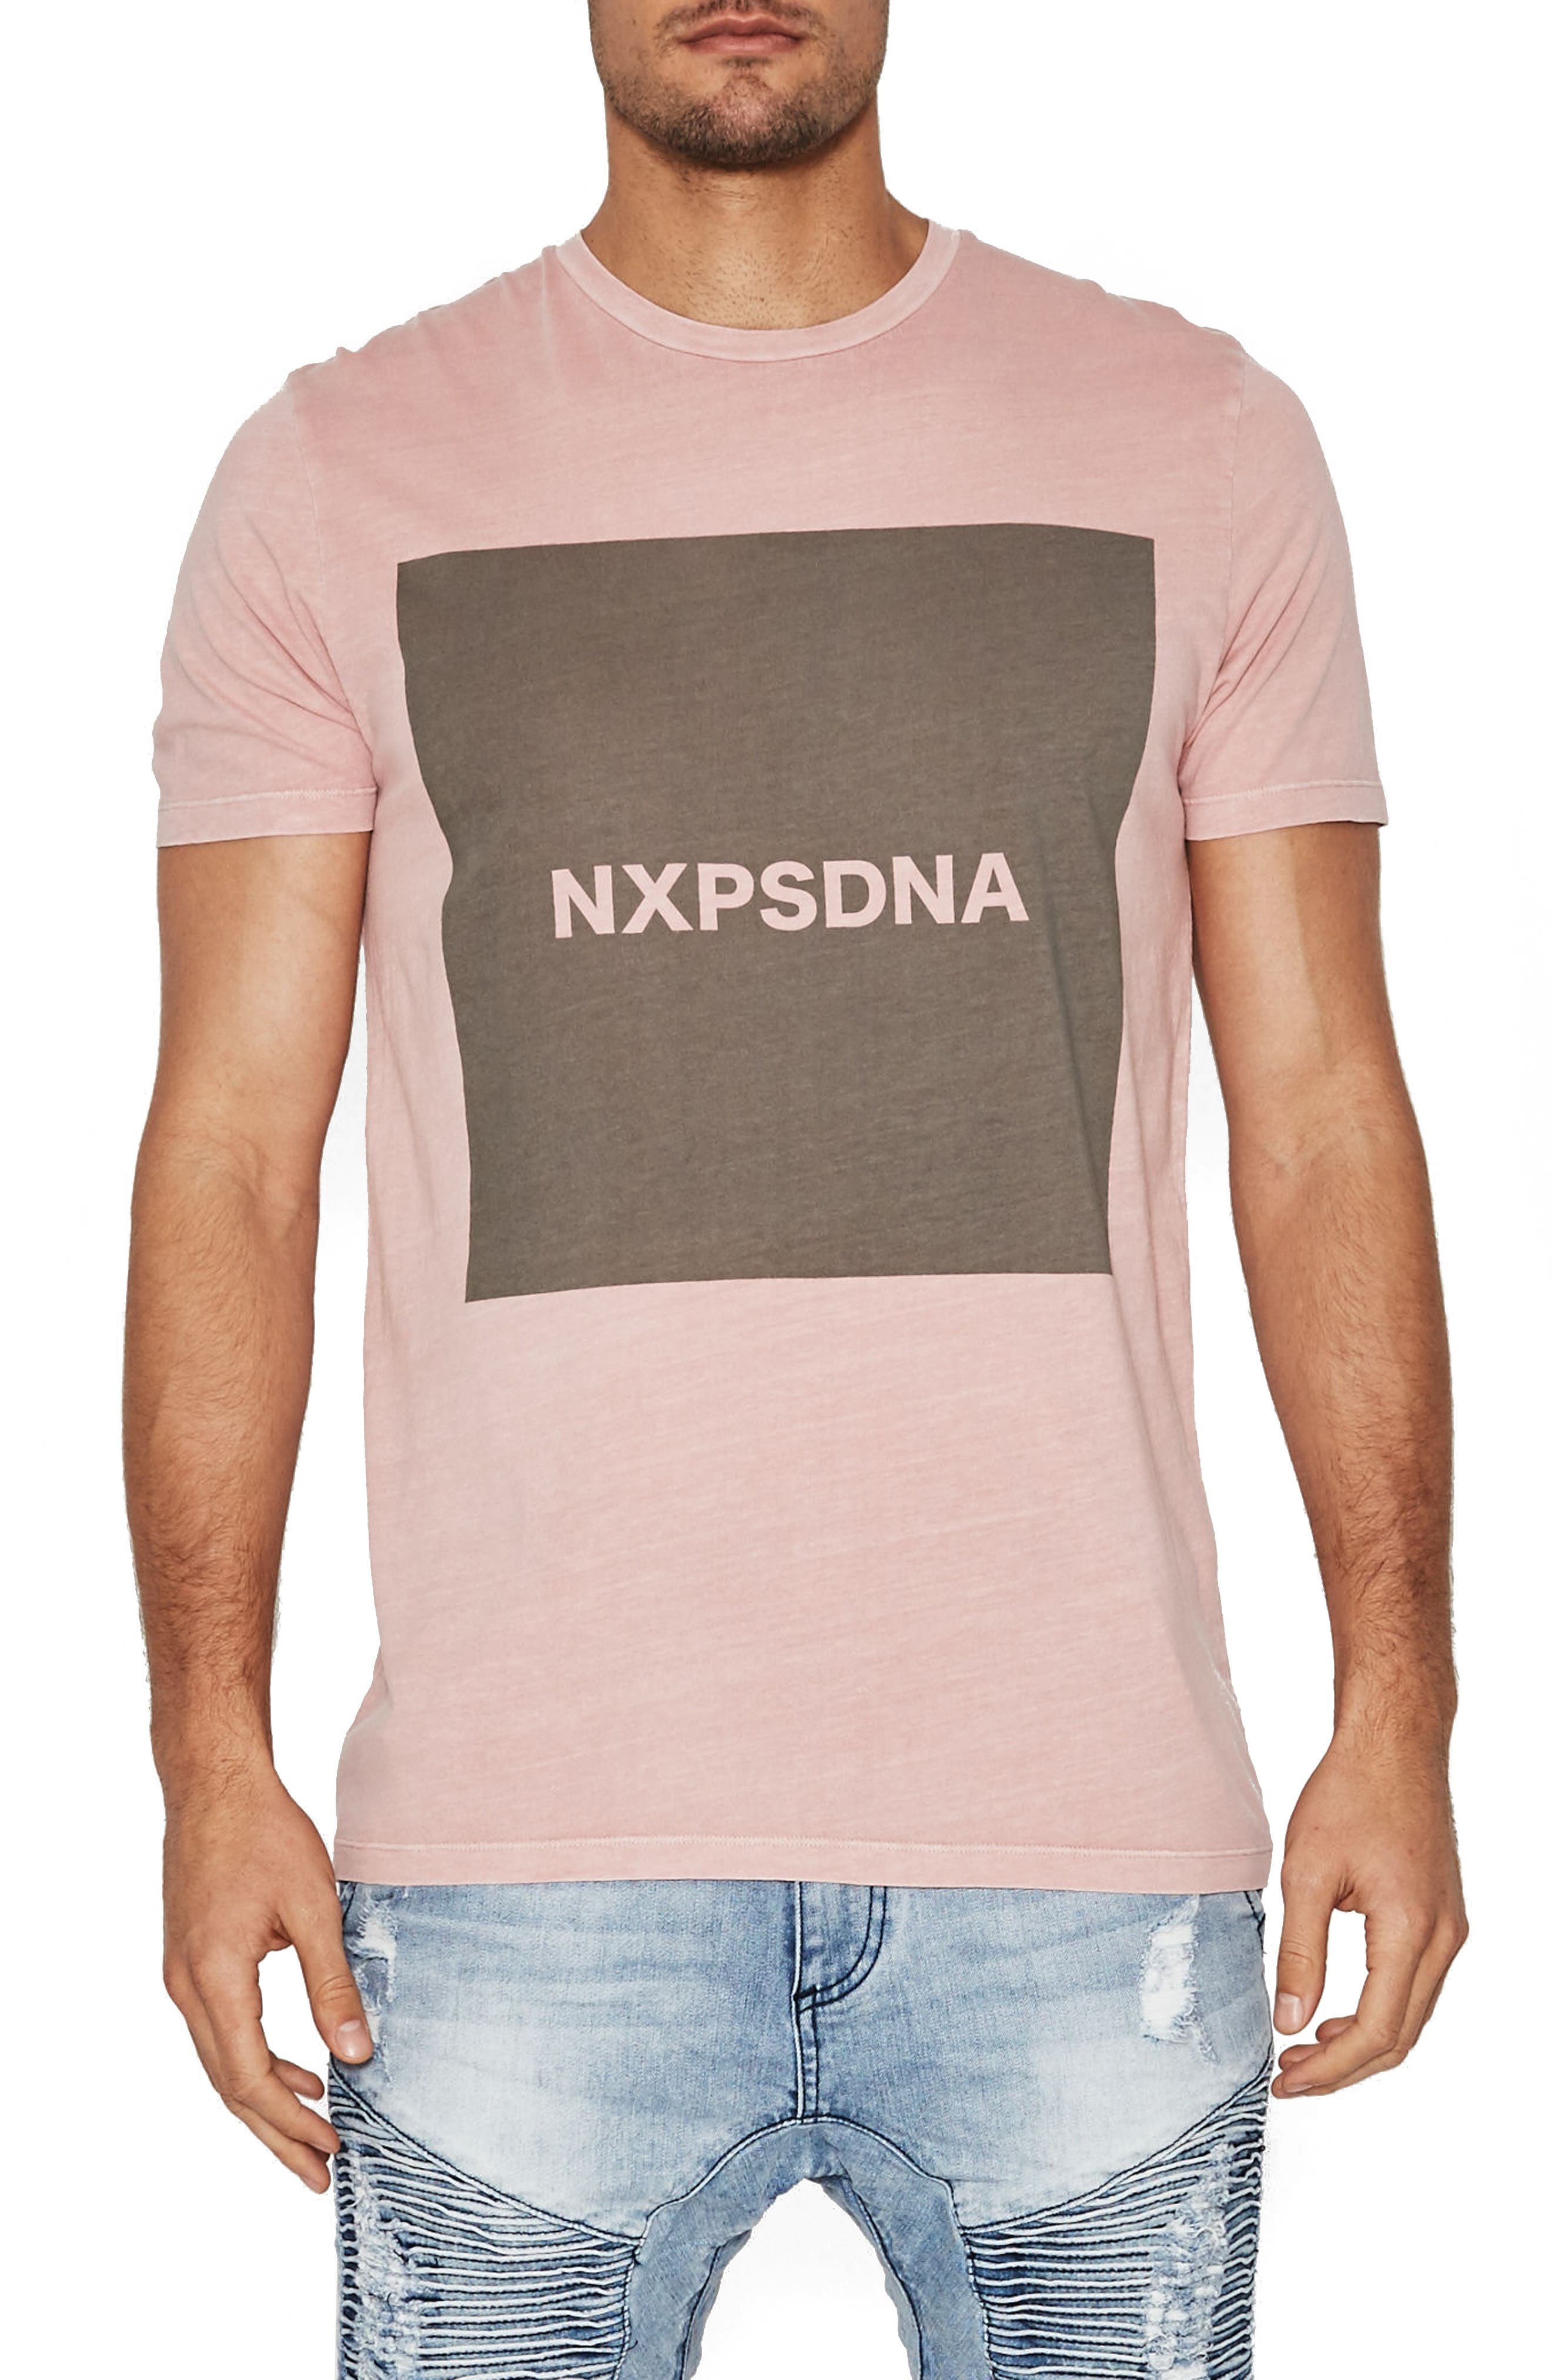 Islands Graphic T-Shirt,                         Main,                         color, 950